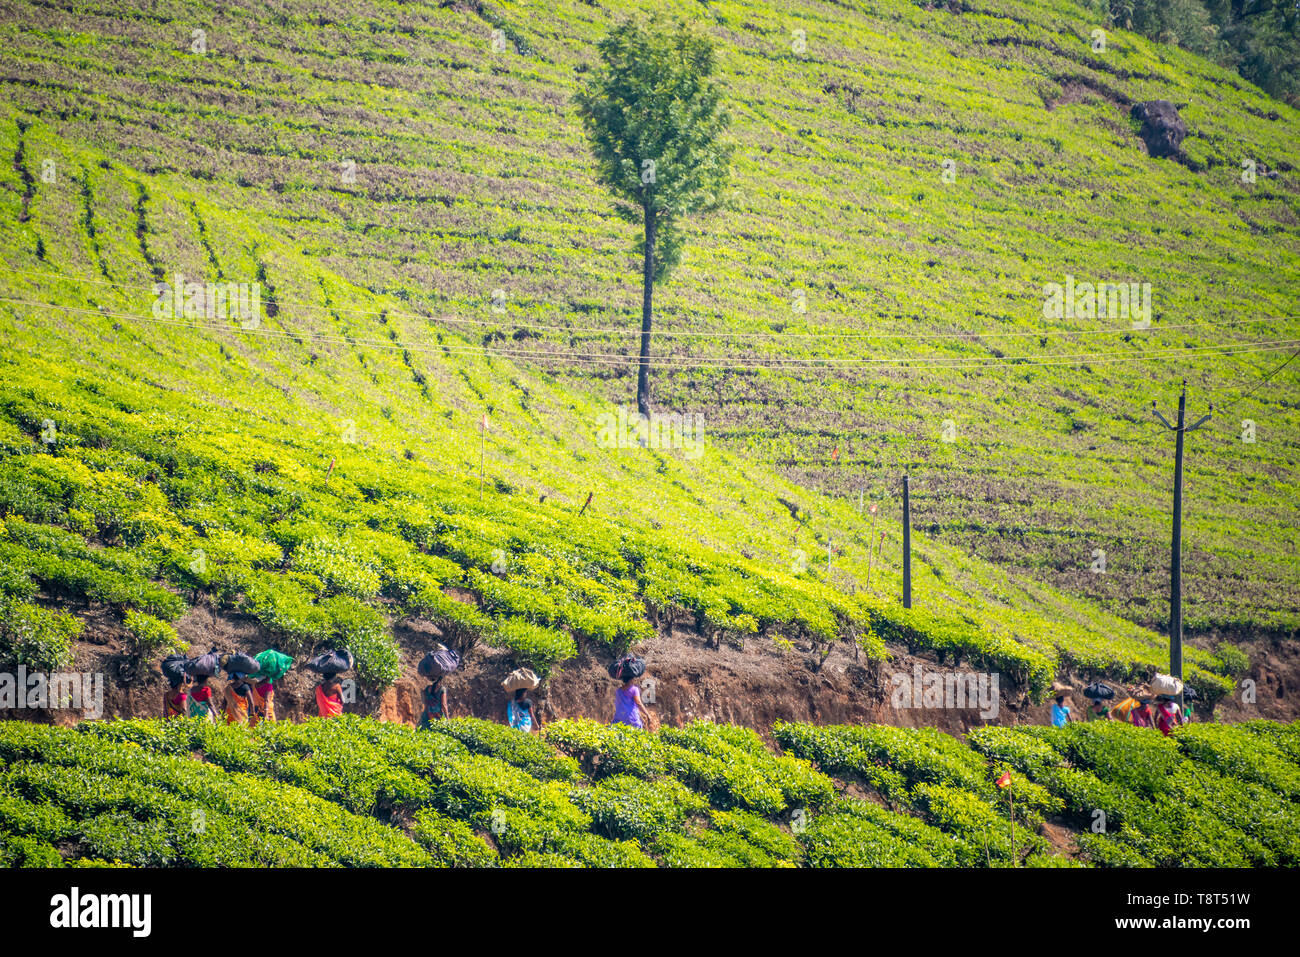 Horizontal view of tea plantation workers walking home in Munnar, India. Stock Photo